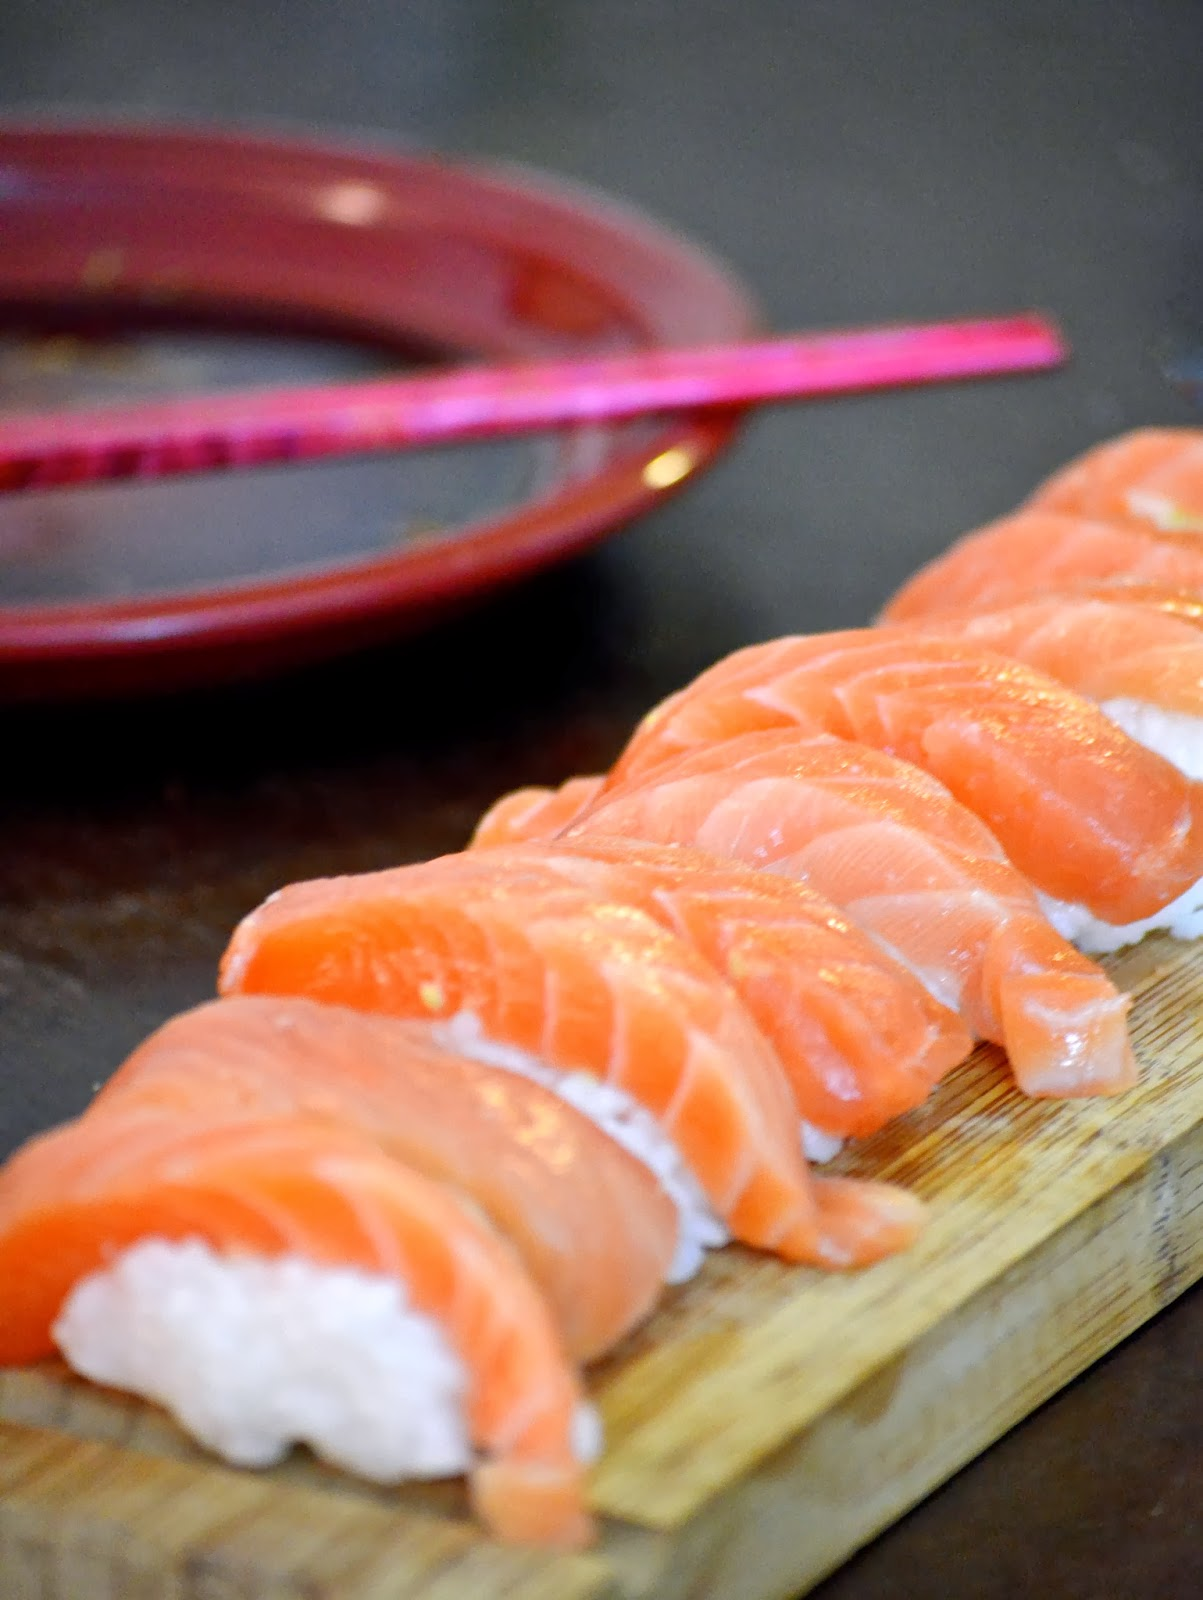 Salmon sashimi from costco obsessive cooking disorder salmon sashimi fish costco sushi ccuart Gallery